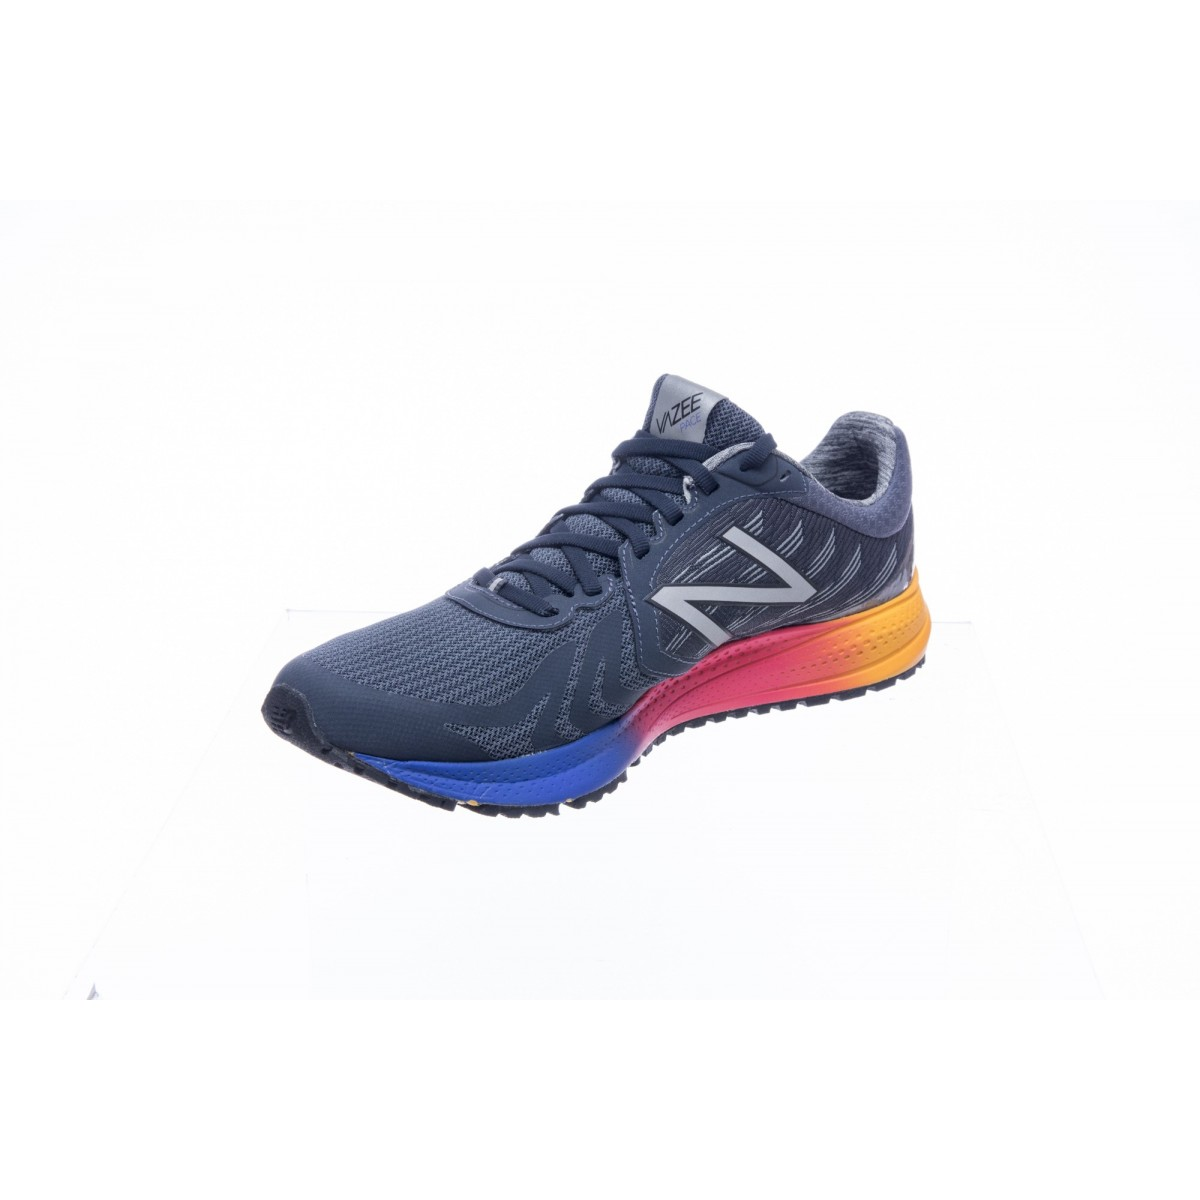 Scarpa New balance - M pace running fashion